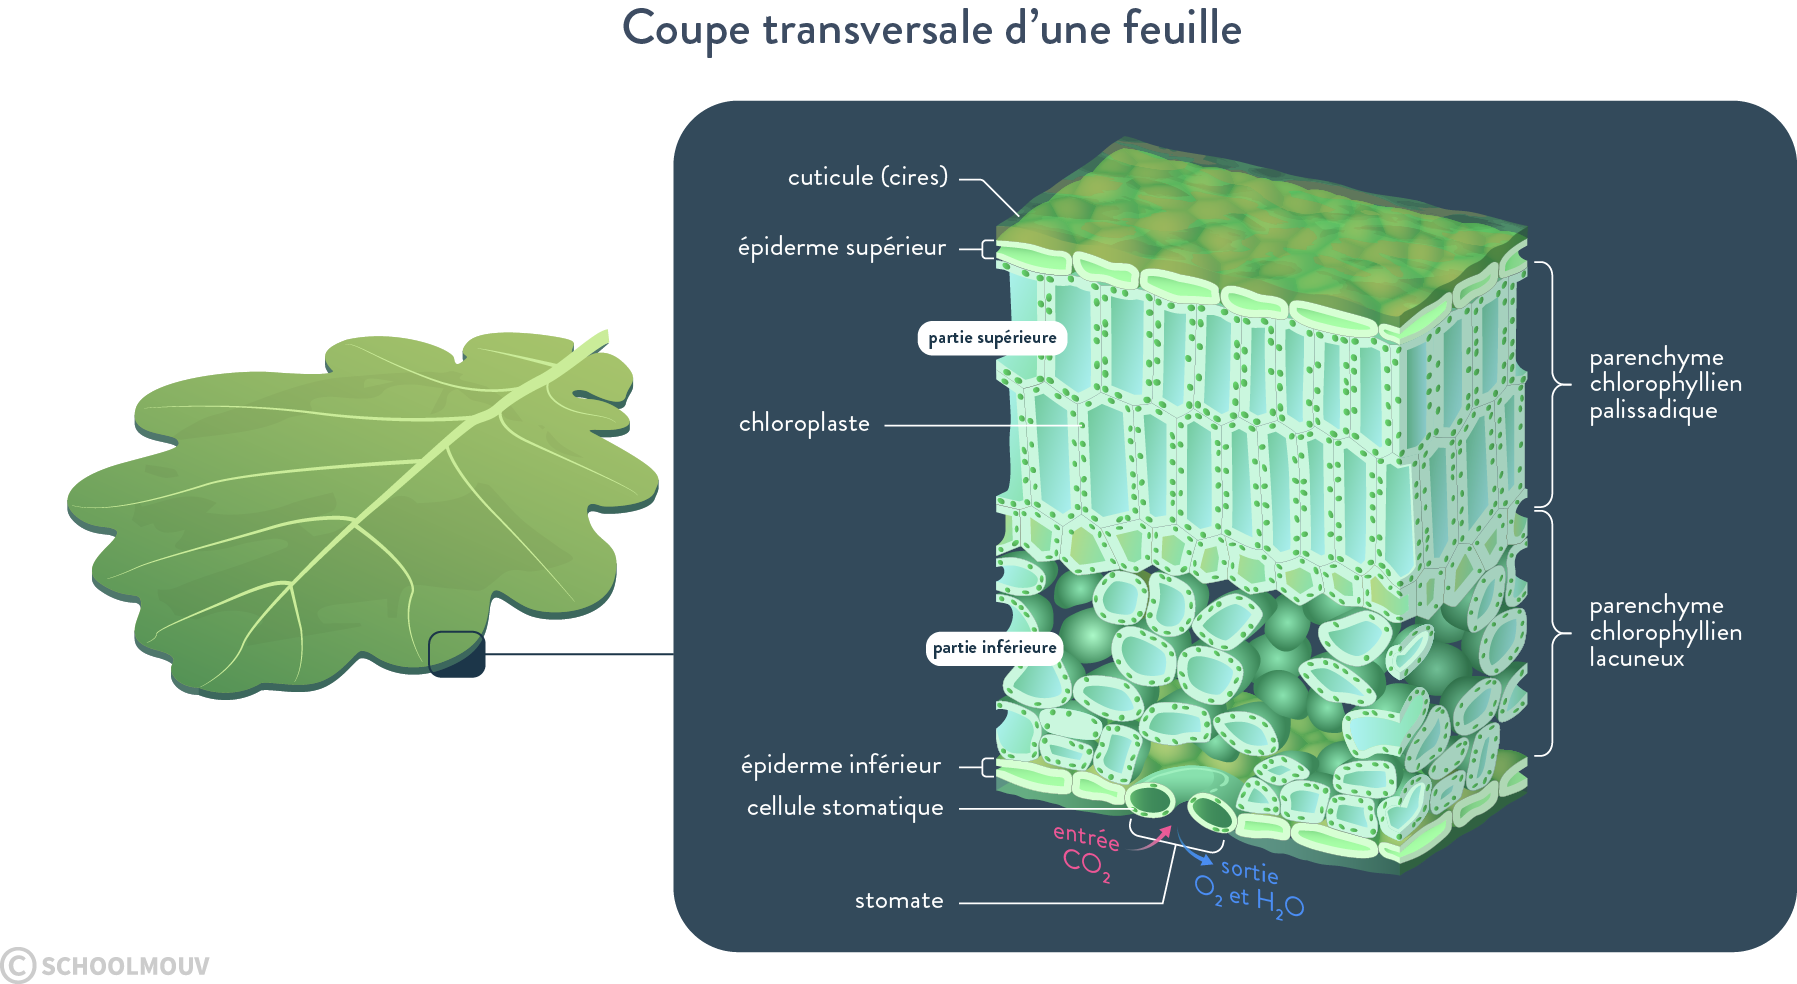 coupe feuille stomate chloroplastes